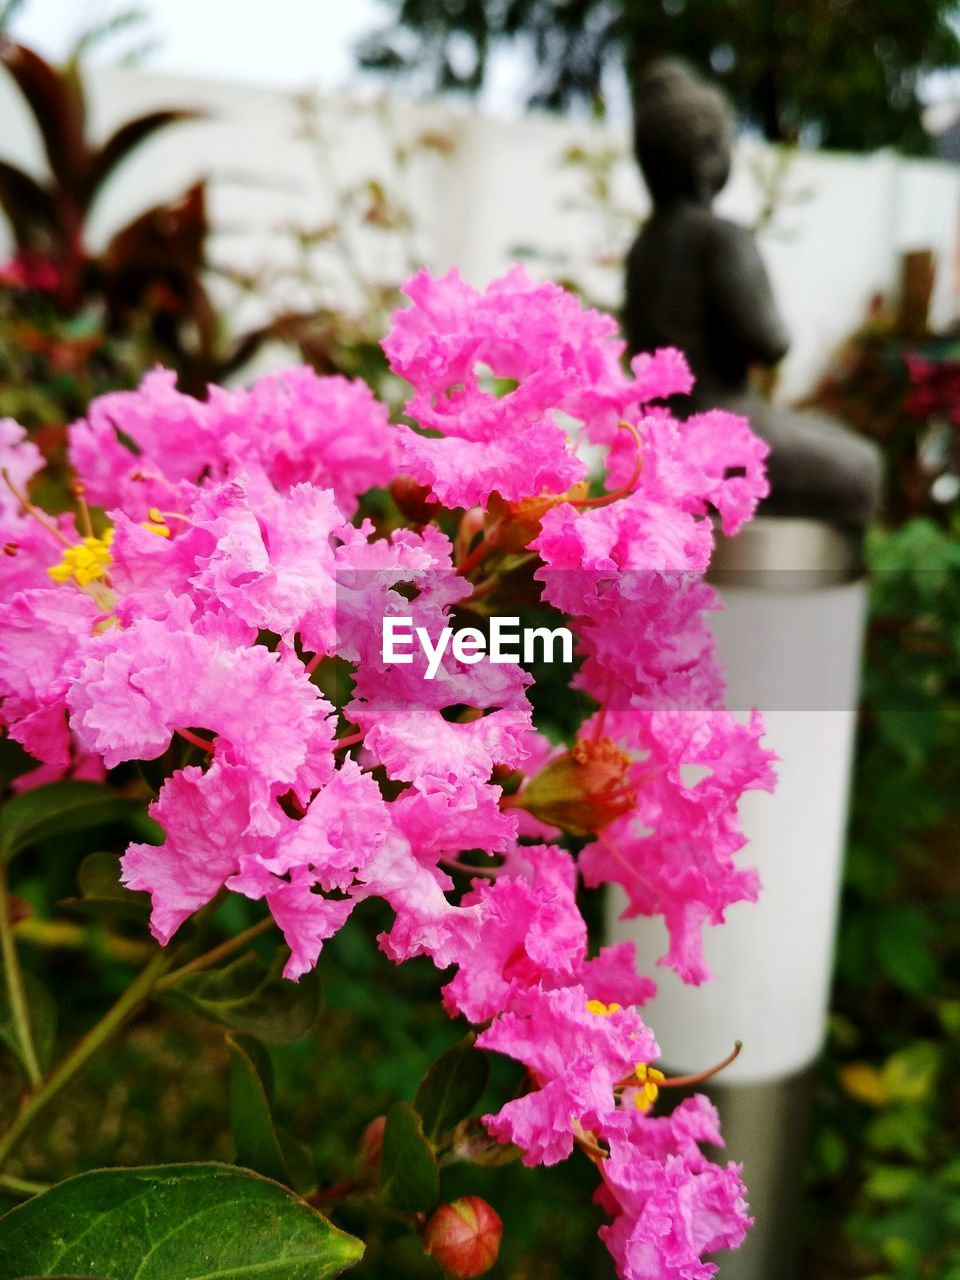 beauty in nature, nature, flower, growth, fragility, pink color, petal, plant, outdoors, focus on foreground, day, close-up, freshness, no people, flower head, leaf, water